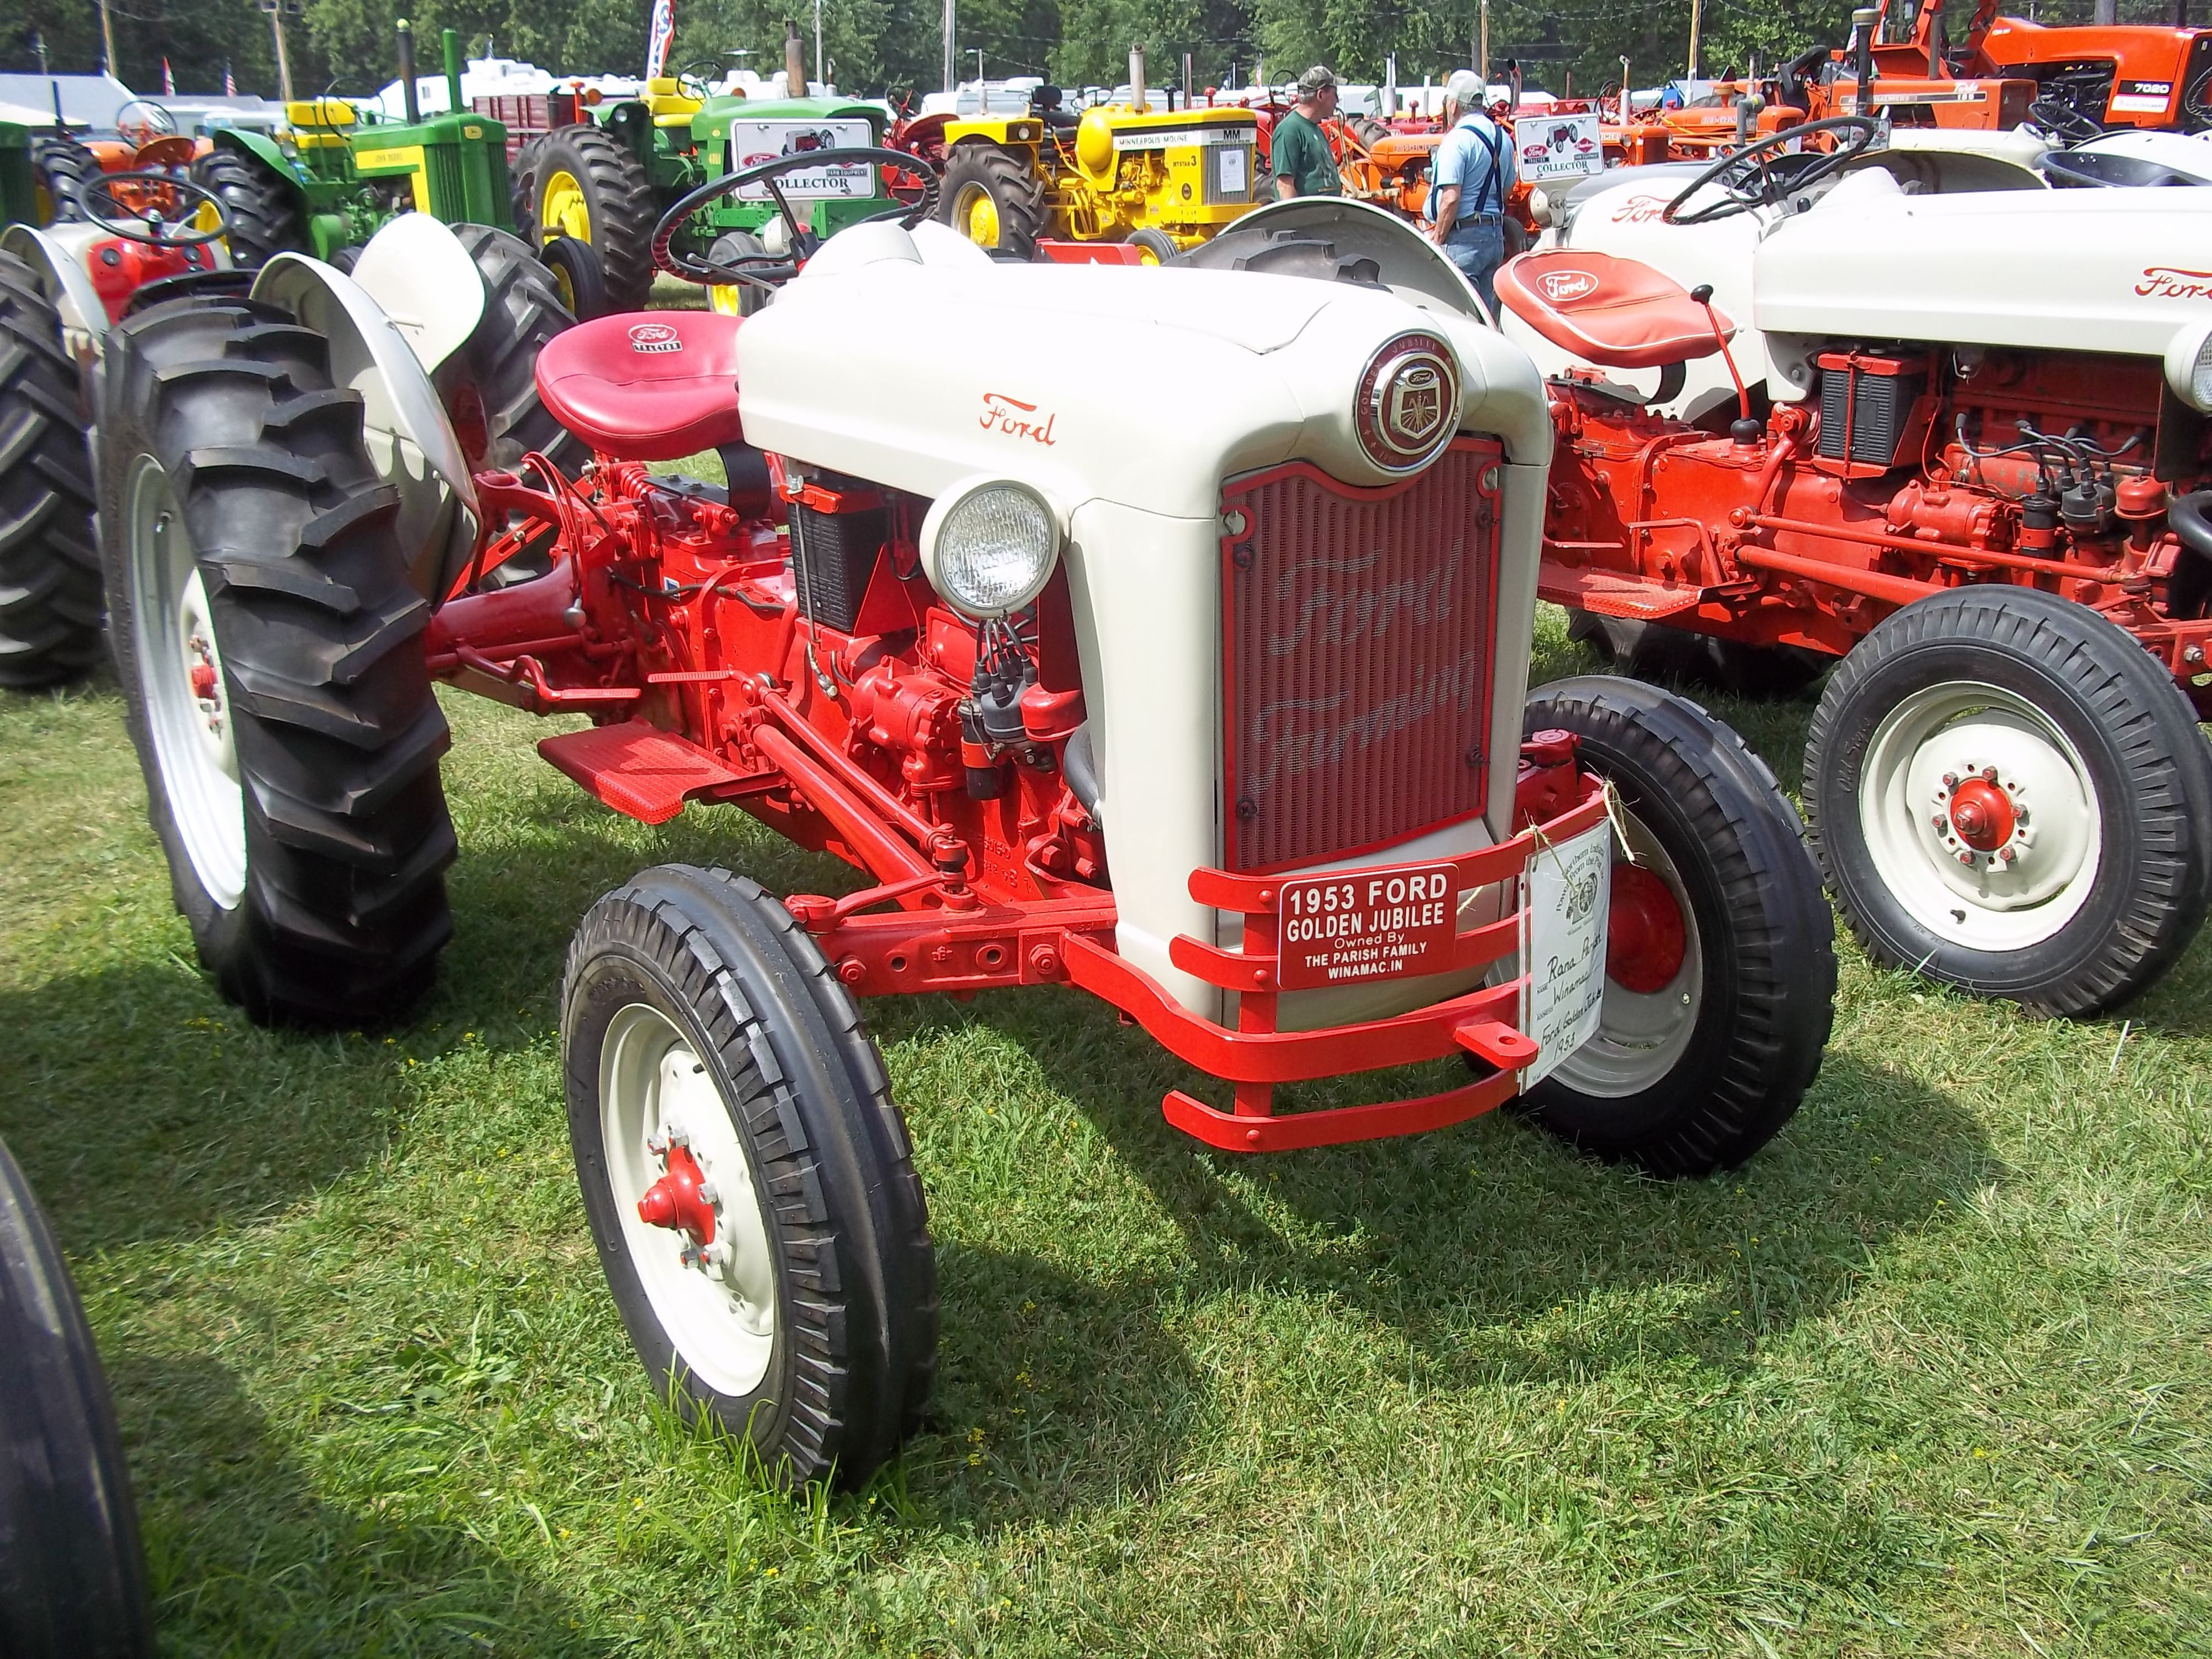 Another 1950s Ford Red Belly Tractor